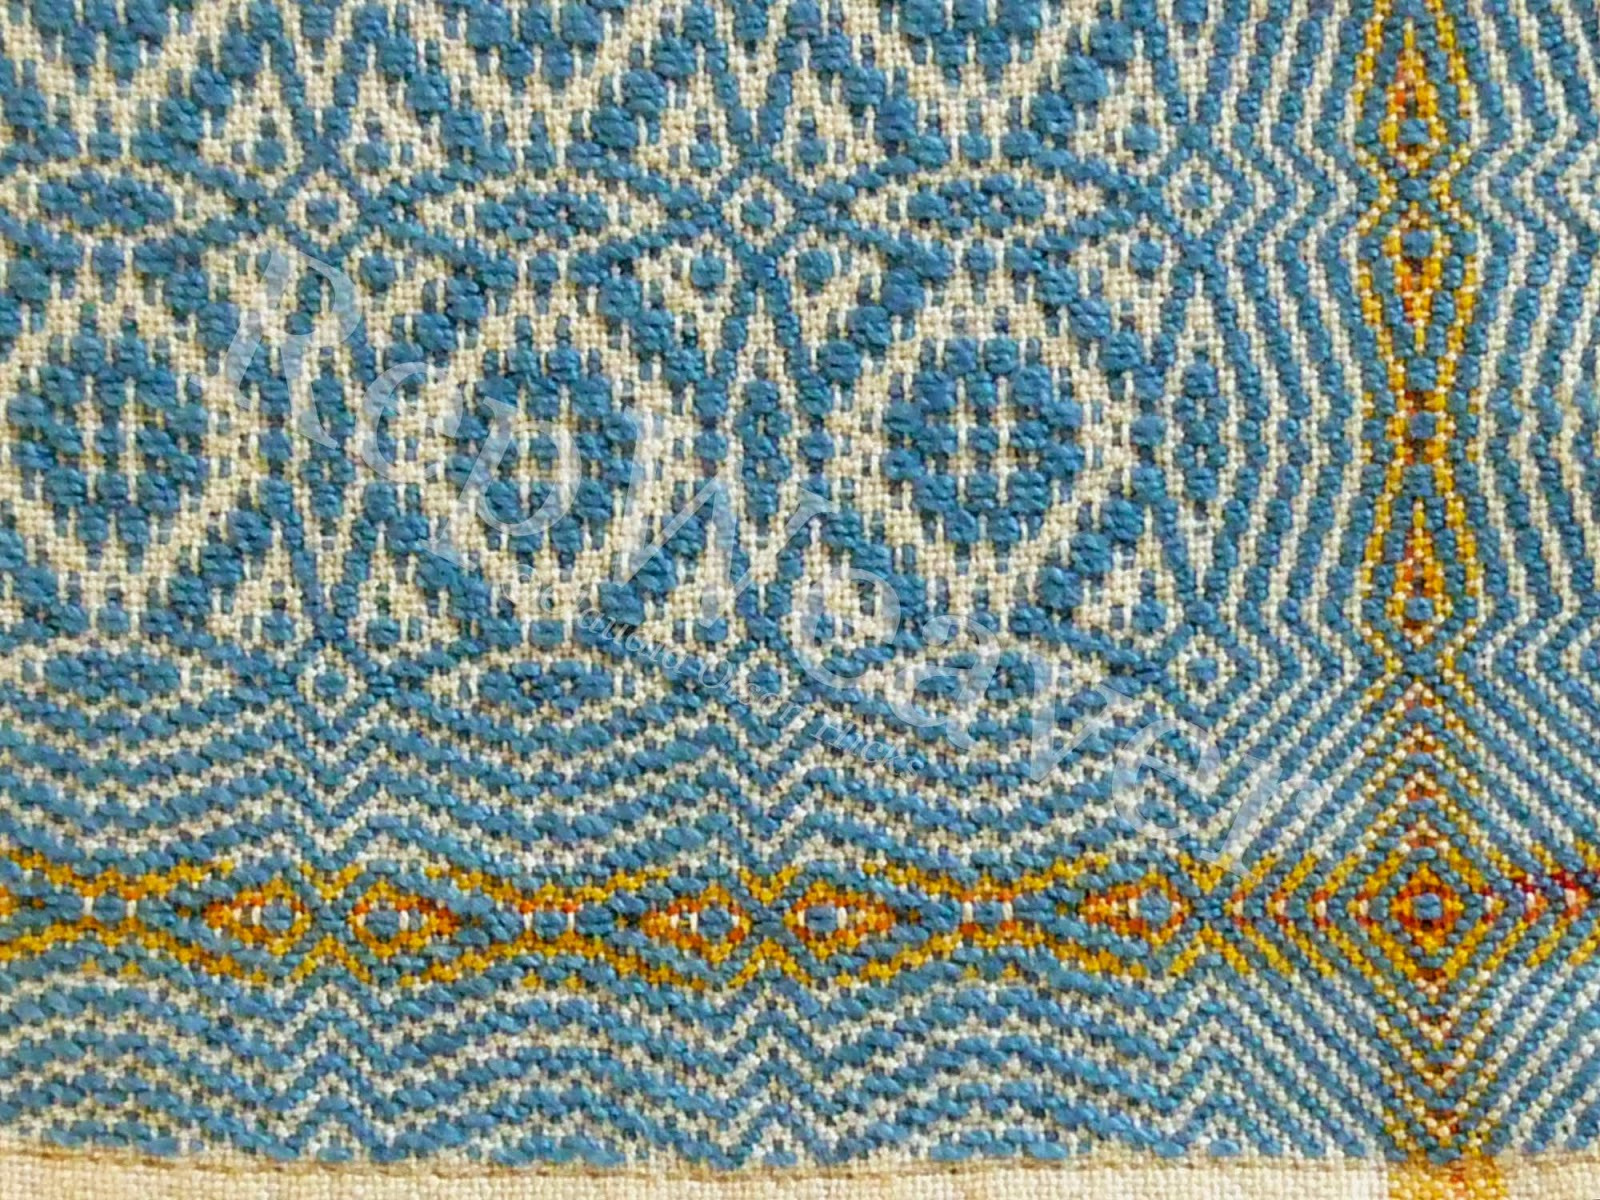 Detail of Wee Coverlet